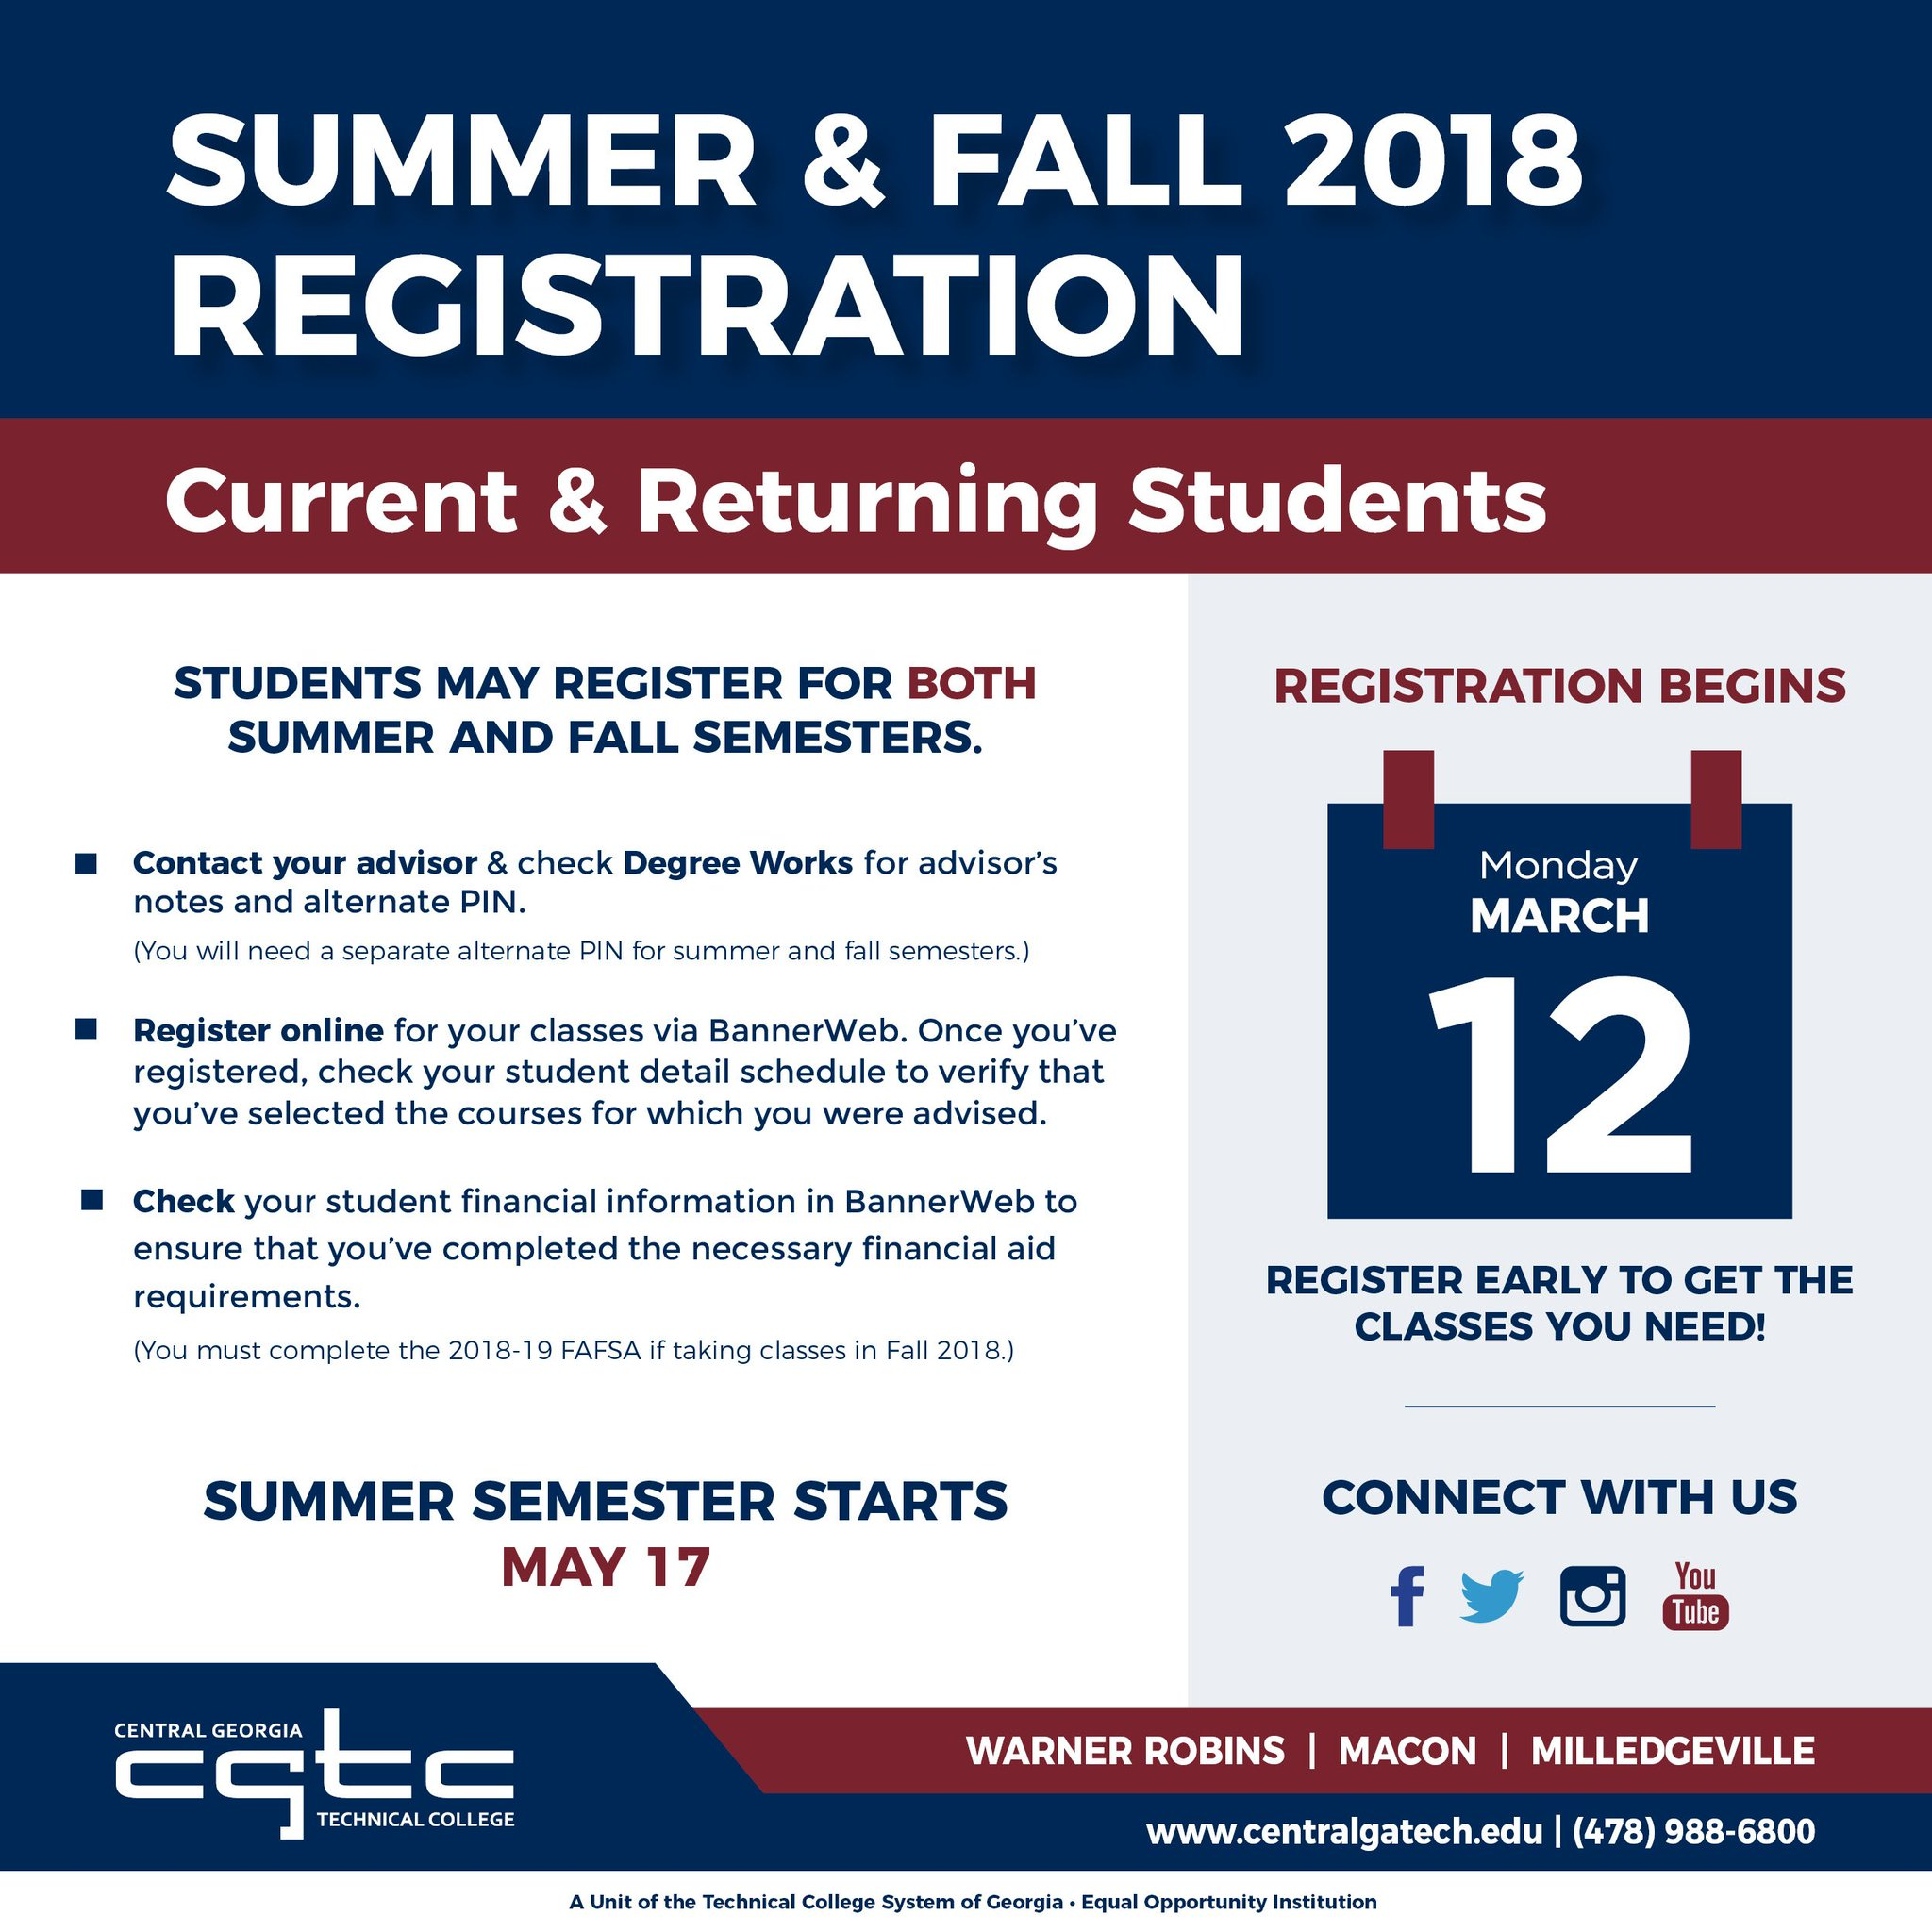 Central Georgia Tech On Twitter Get Ready To Sign Up For Classes